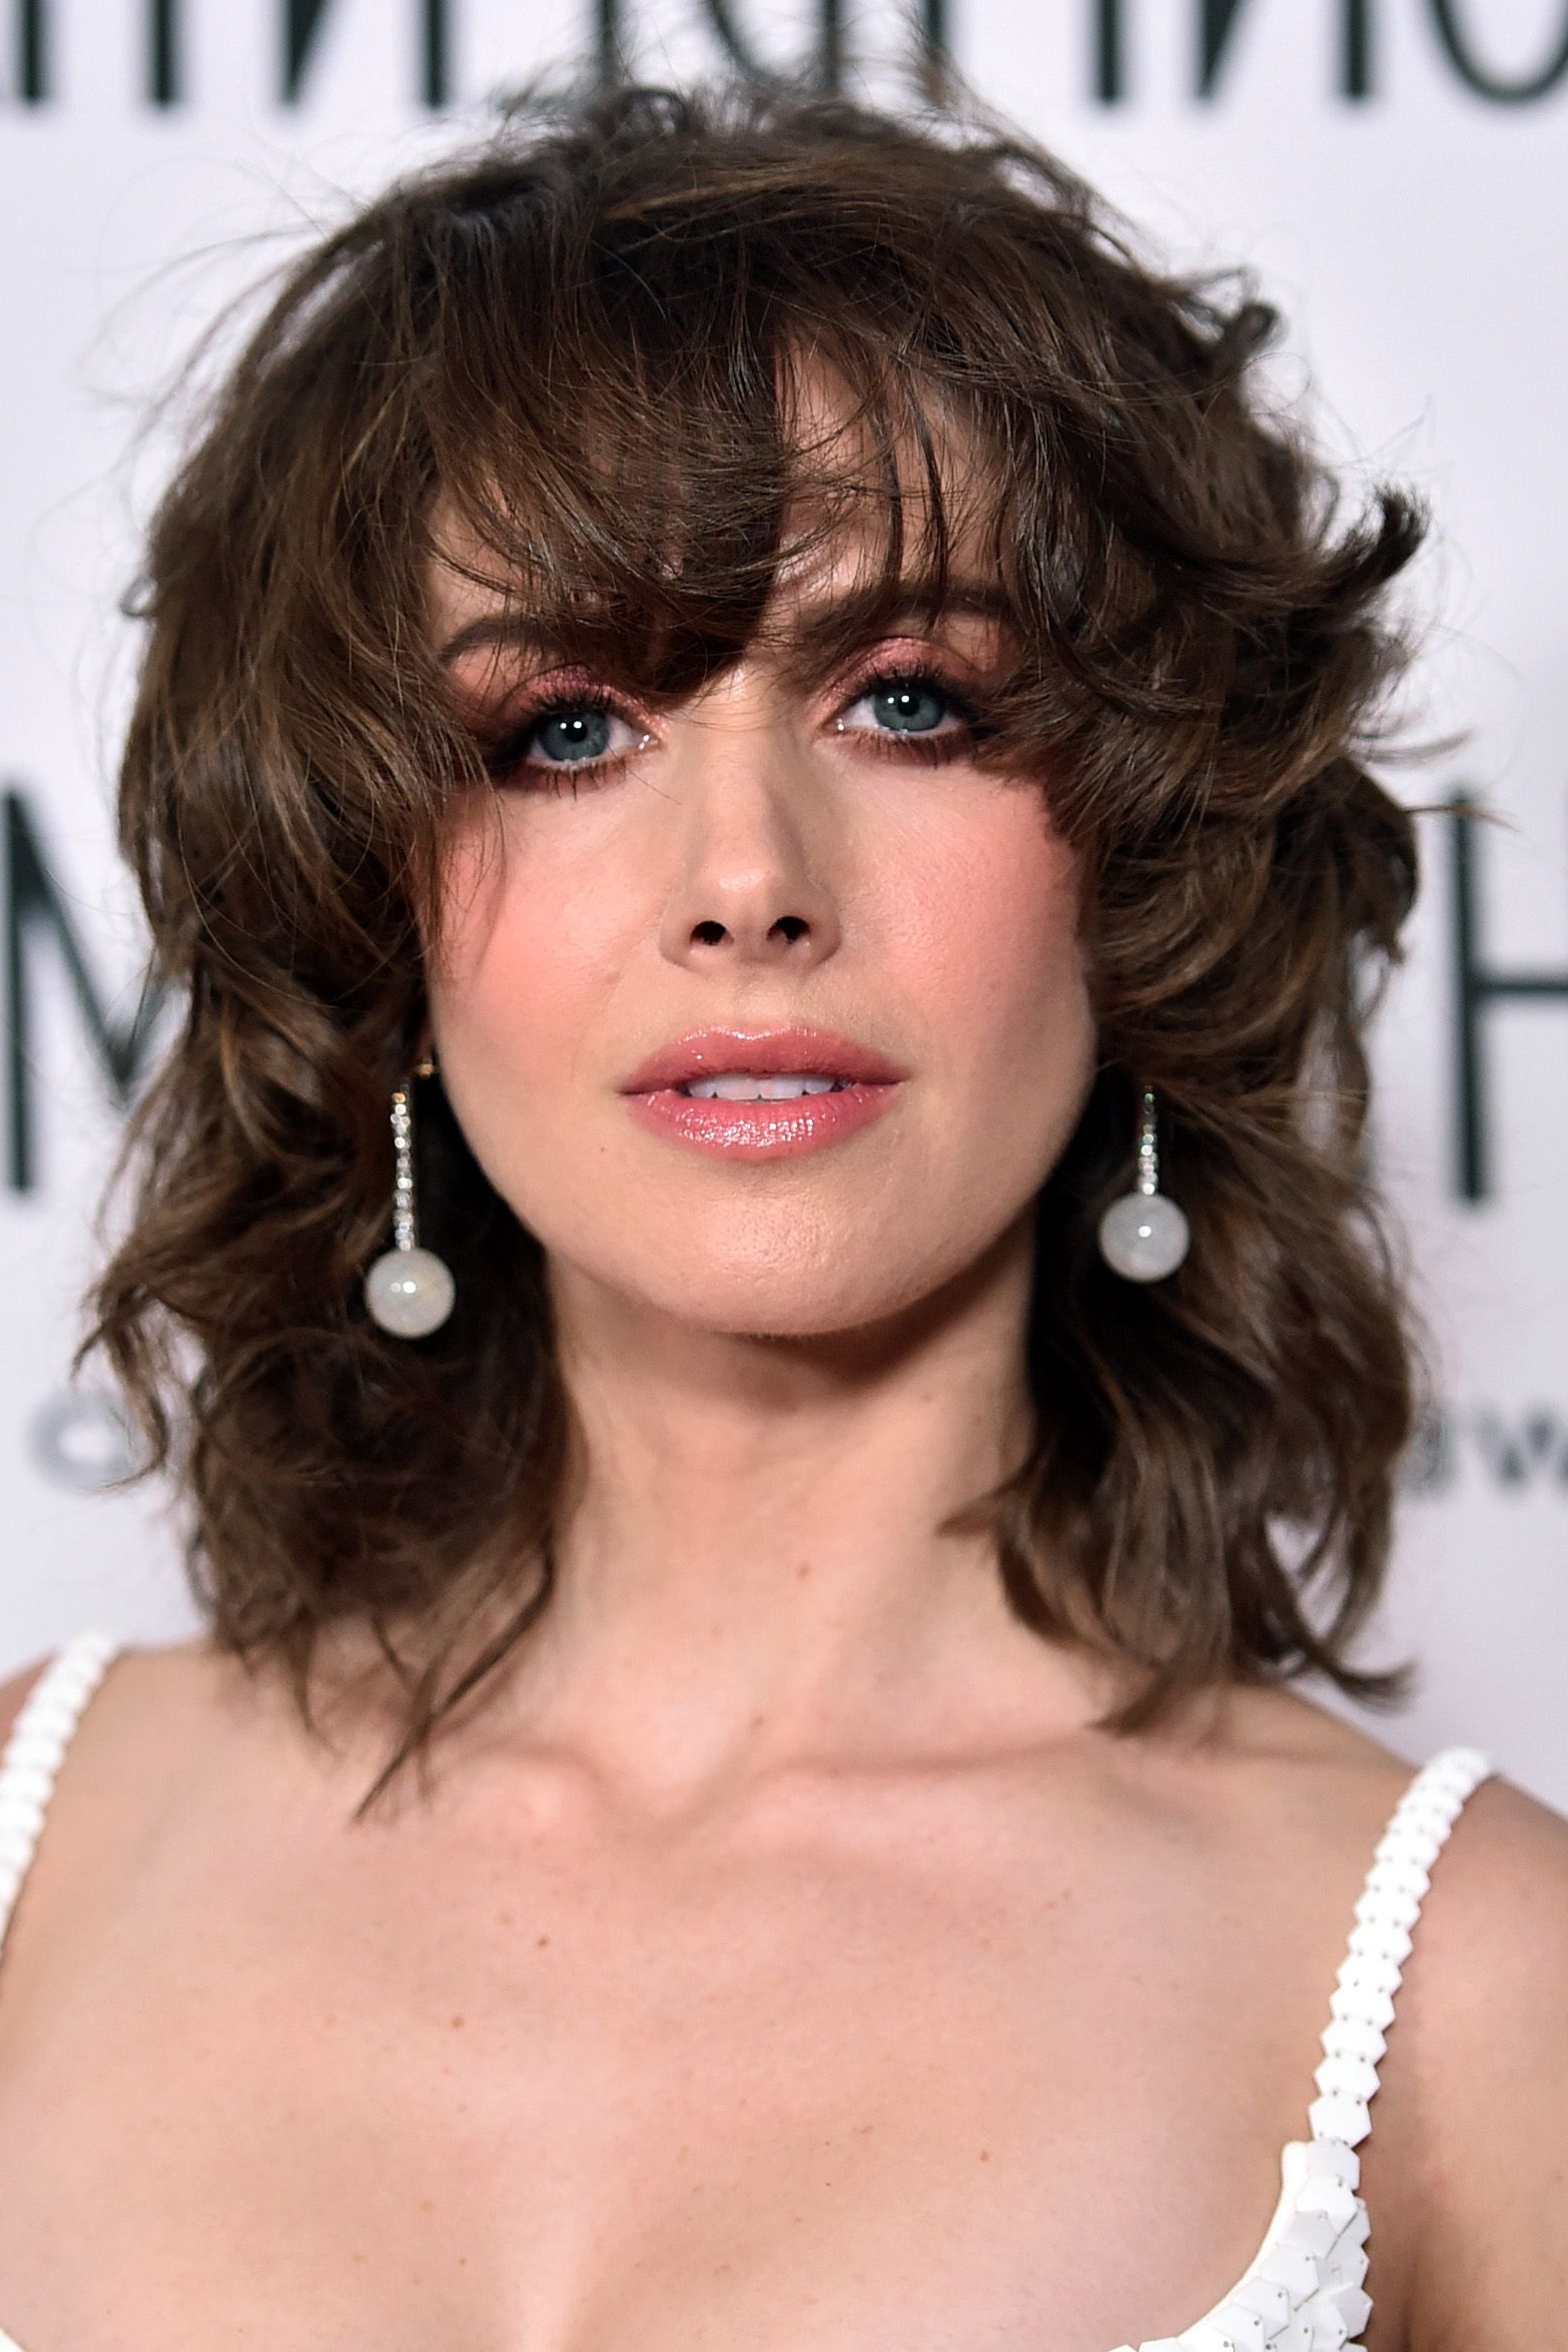 35 Best Hairstyles With Bangs – Photos Of Celebrity Haircuts With Bangs With Regard To Most Recently Released Voluminous Wavy Layered Hairstyles With Bangs (View 15 of 20)